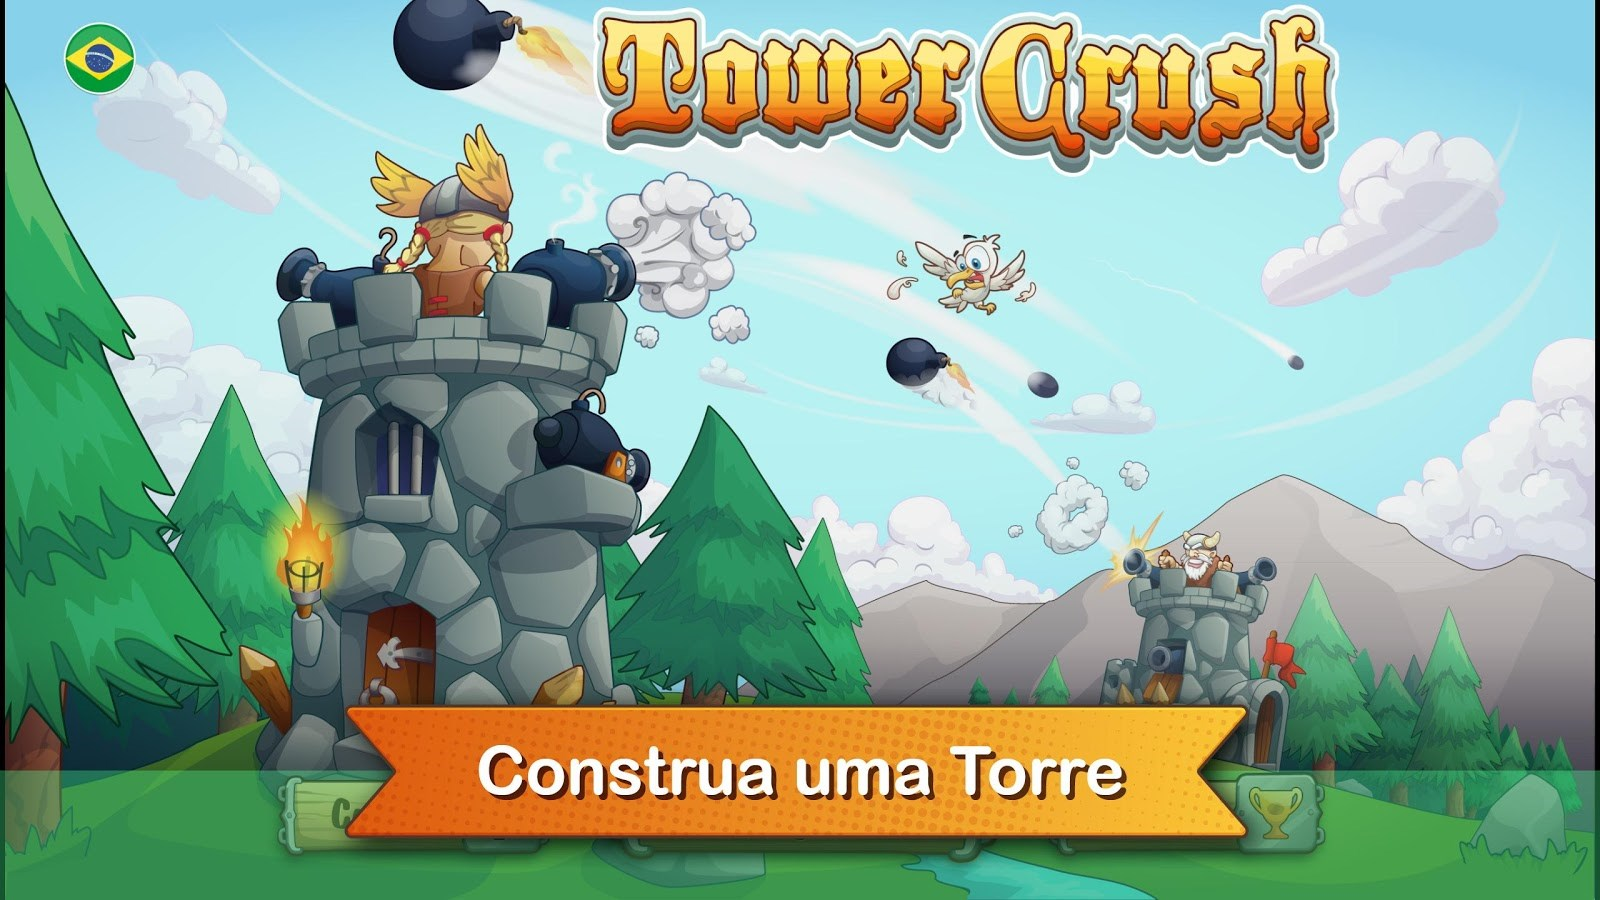 Tower Crush - Imagem 1 do software